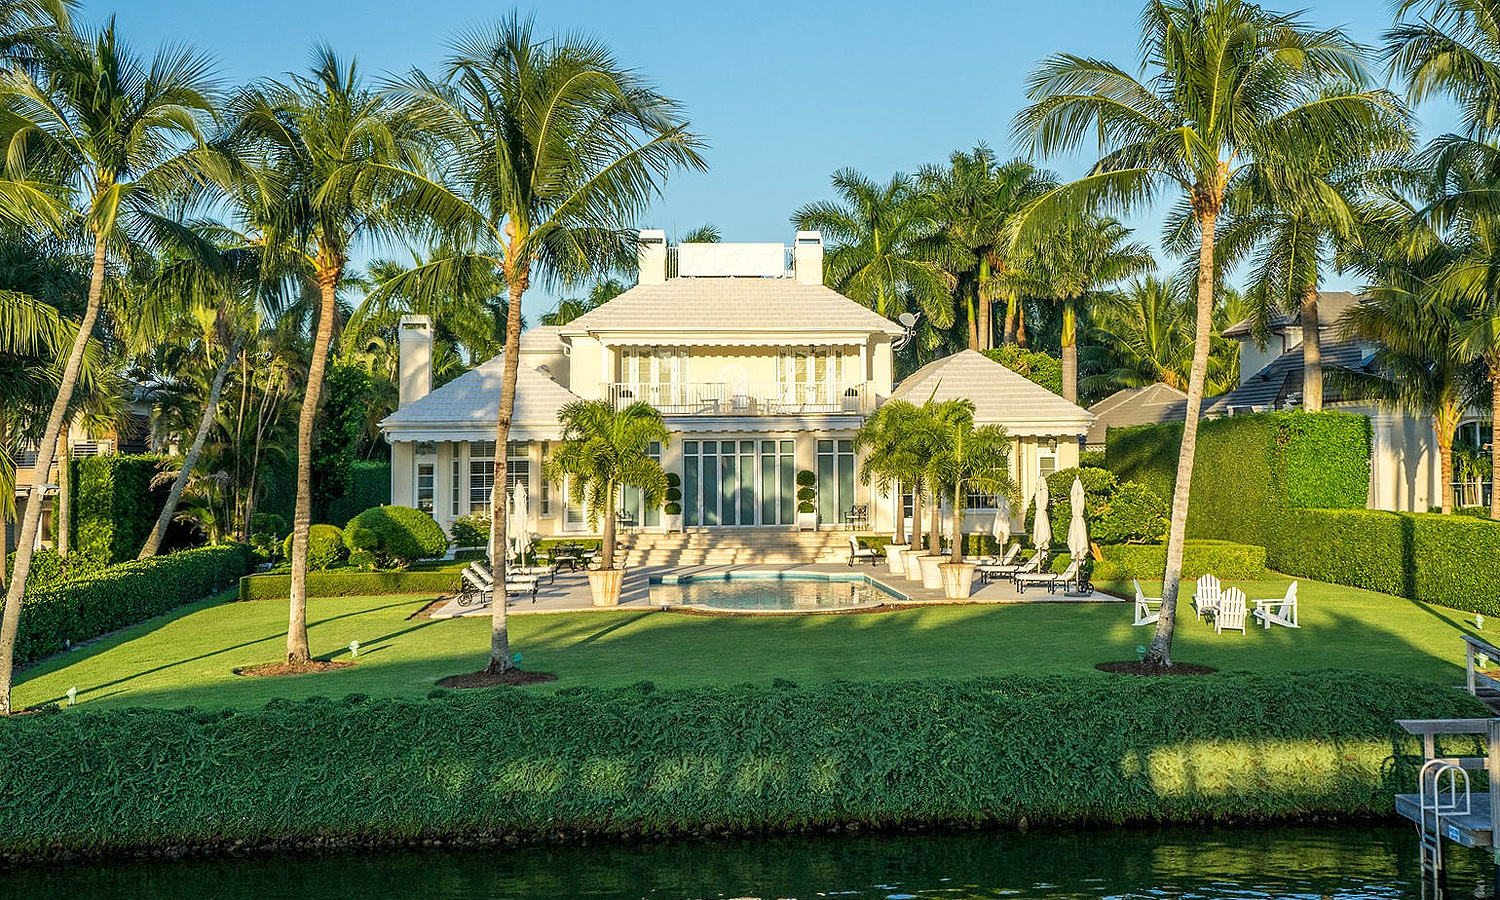 Buy a house in Cape Coral, Florida